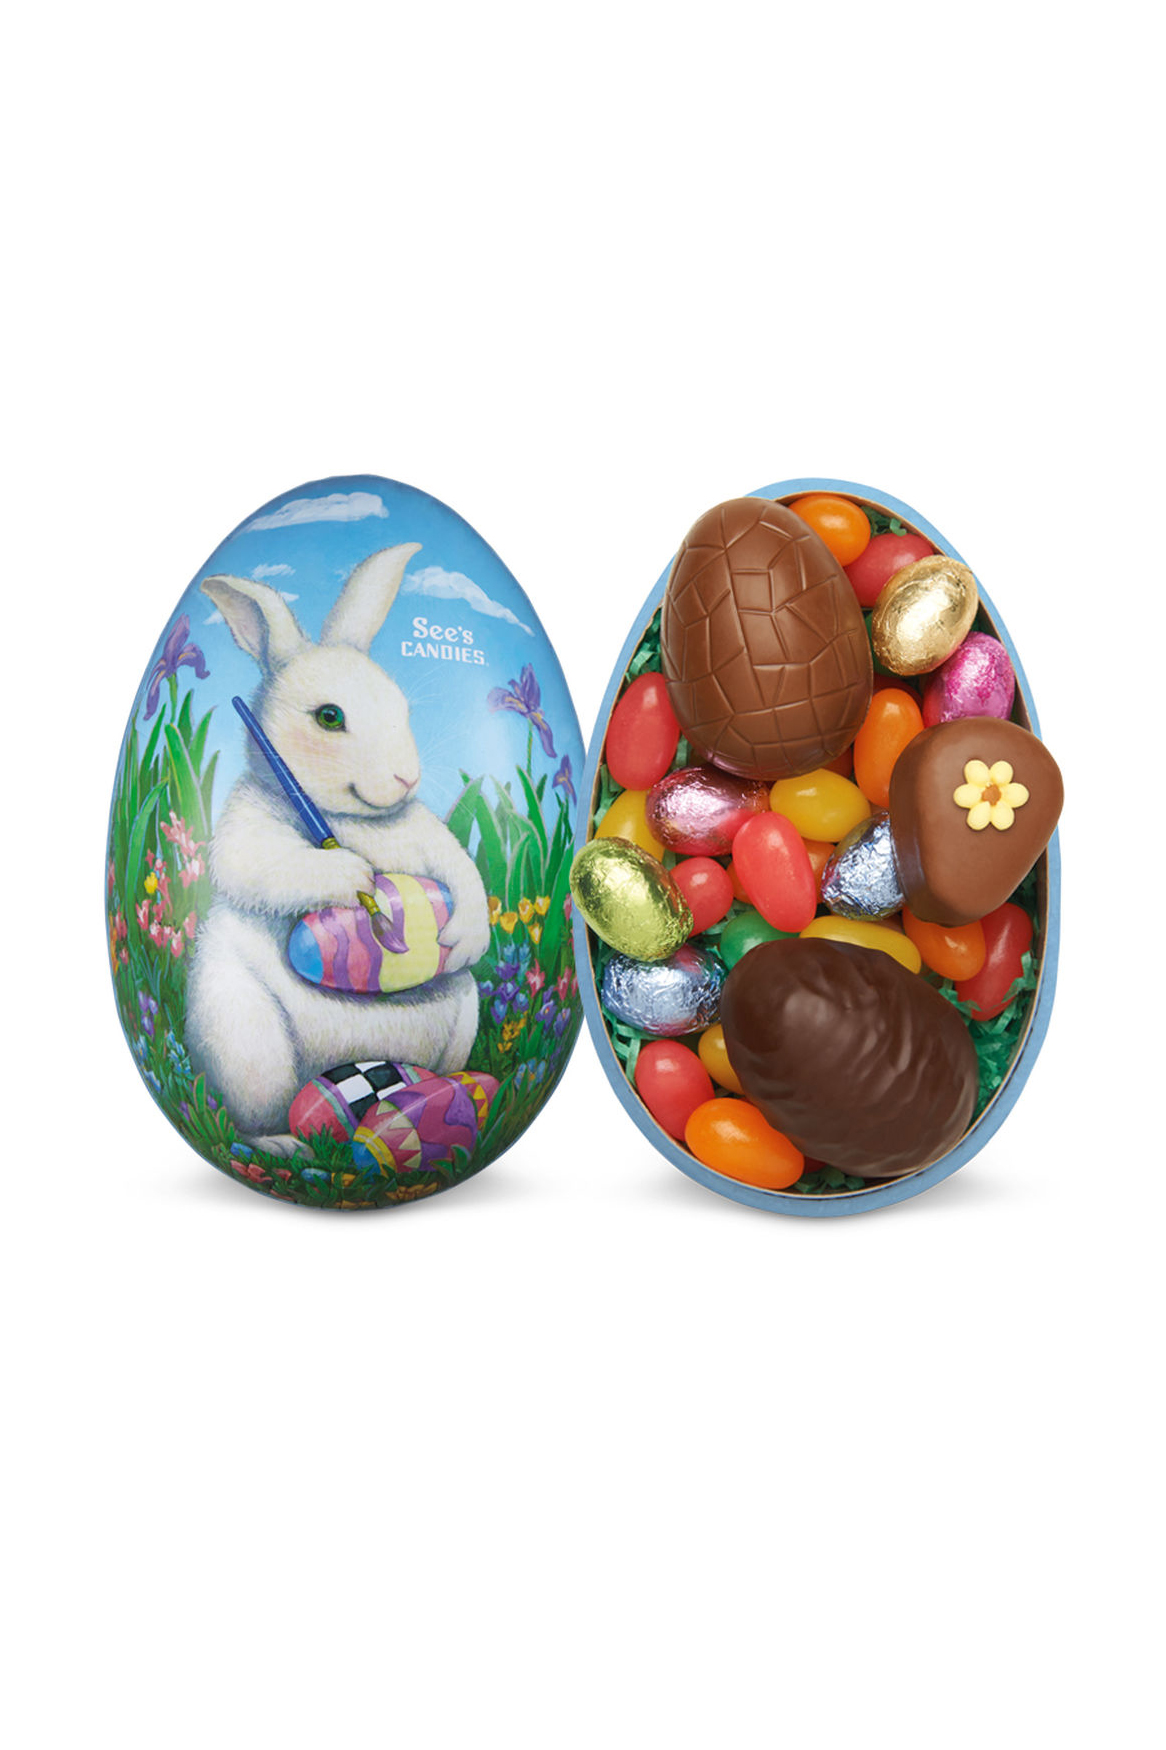 20 best chocolate easter eggs 2018 top chocolate eggs to buy negle Images